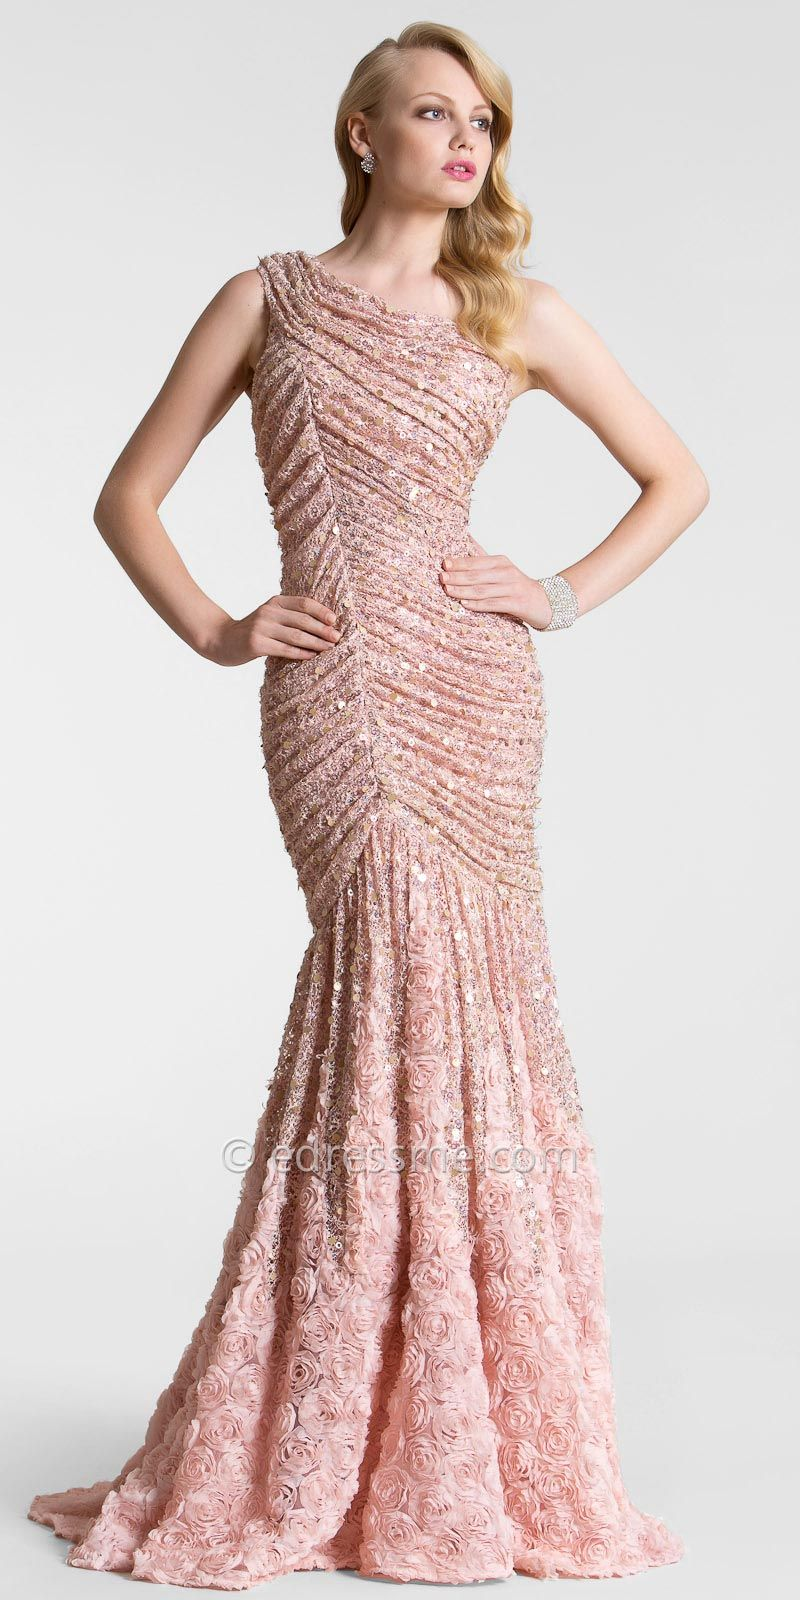 blush_flower_sequin_lace_evening_dresses- | Lace Evening Dress ...